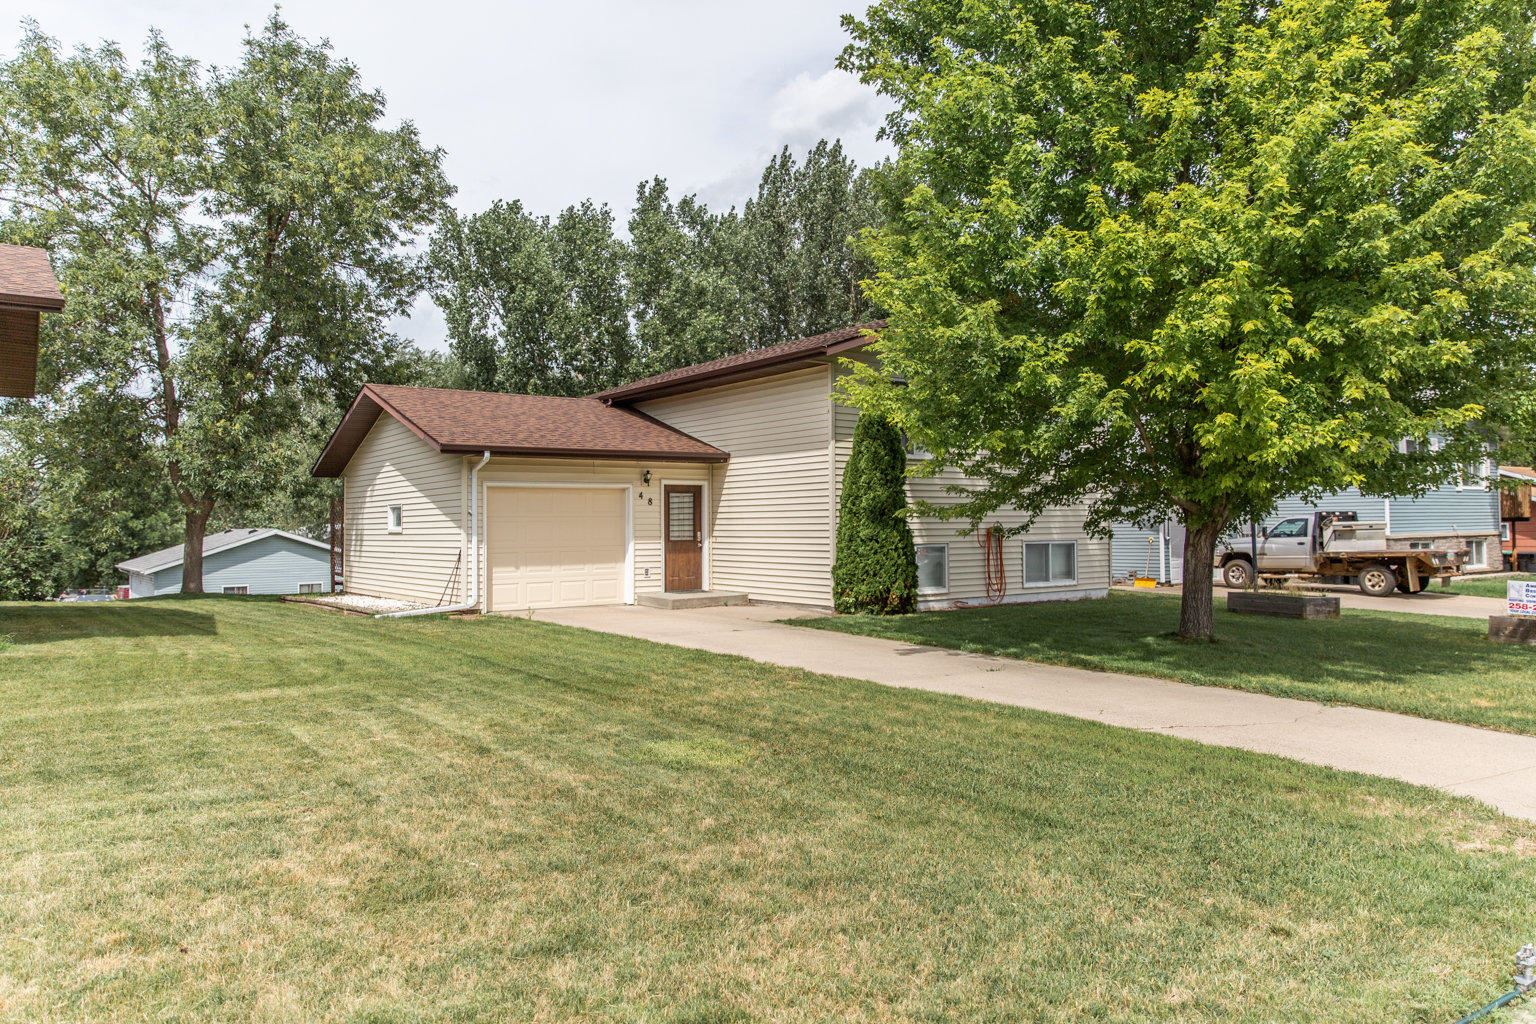 48 Custer Drive, Lincoln, ND 58504 - #: 407621